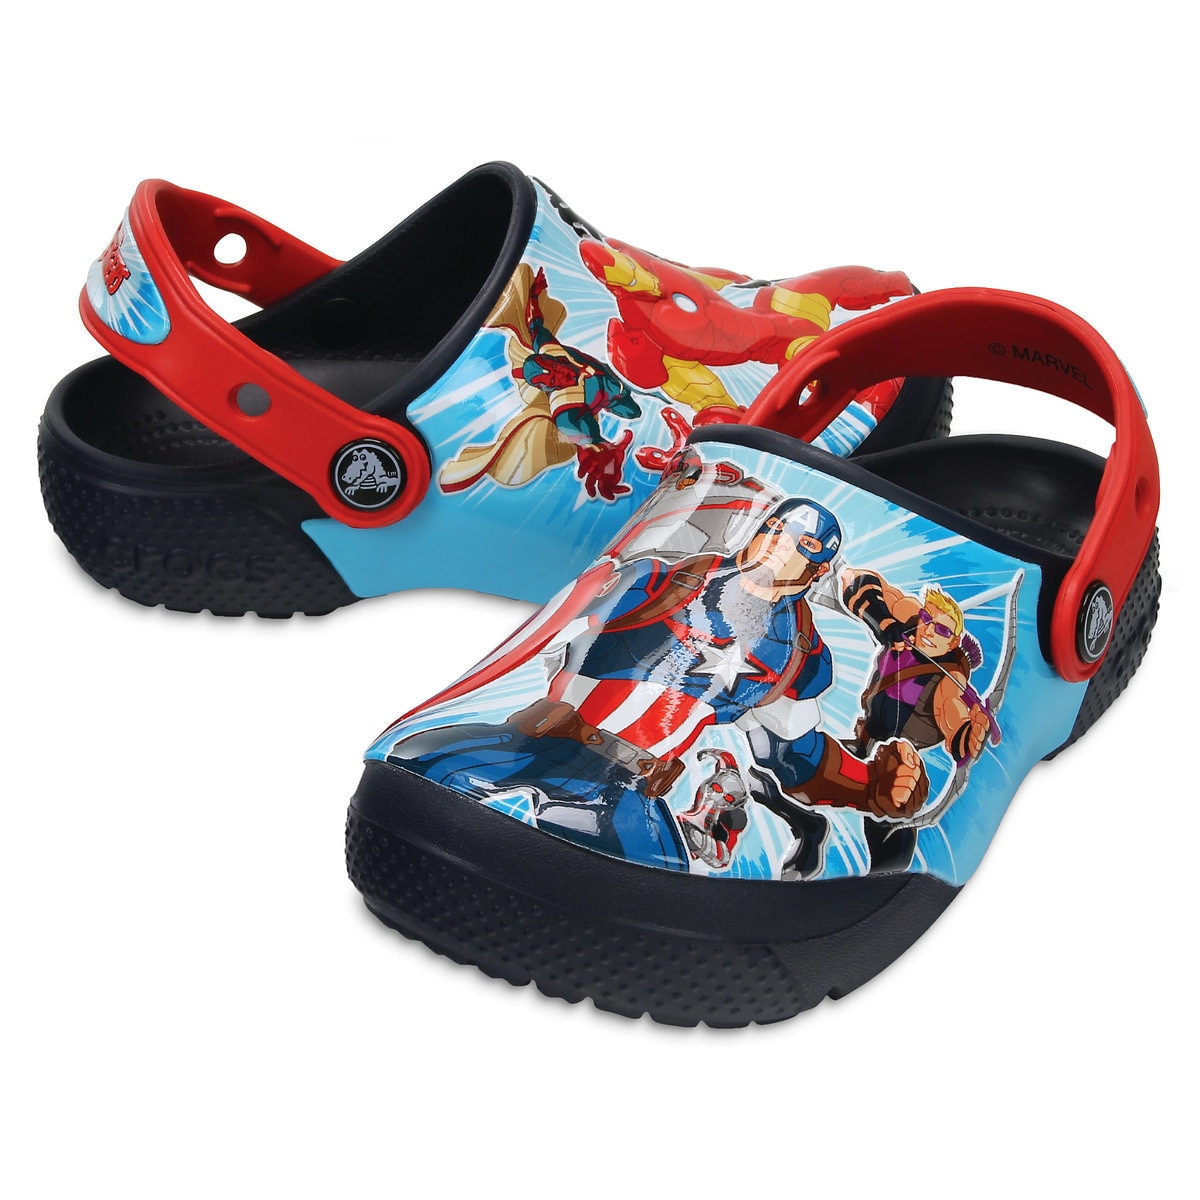 357ef4b973eed Product Image of The Avengers Crocs™ Clogs for Boys   1